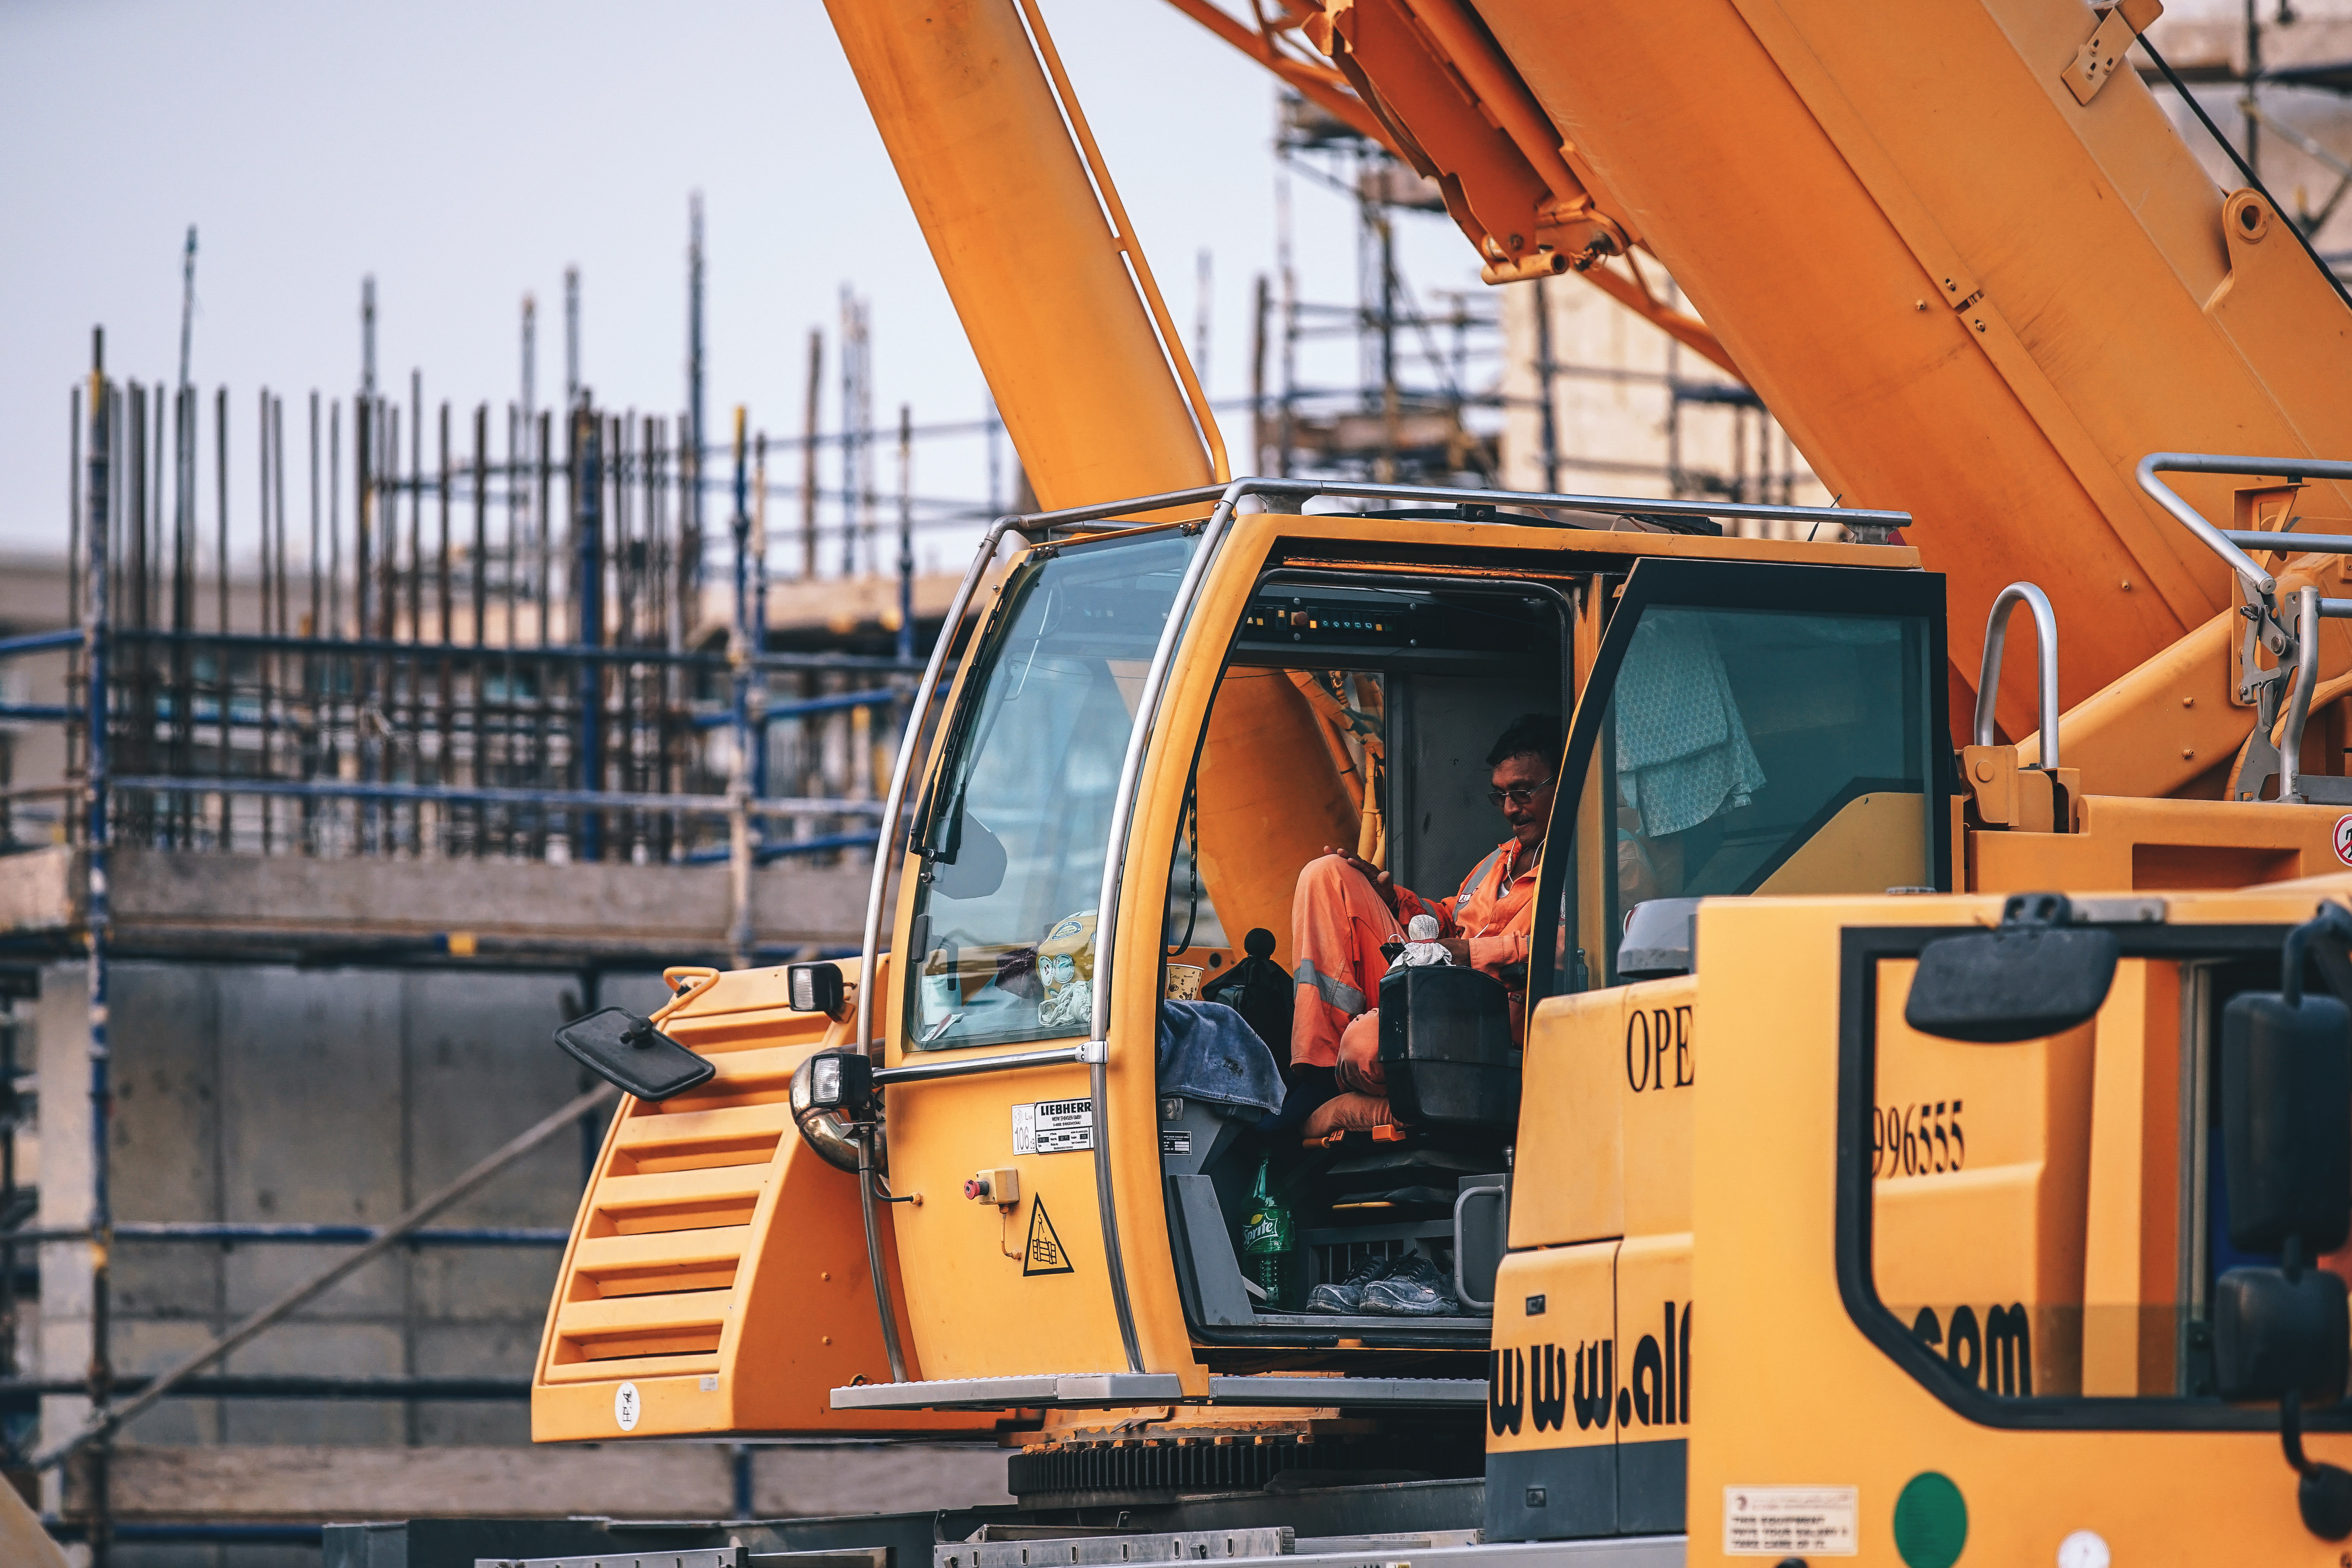 Canva - Person Operating Heavy Equipment